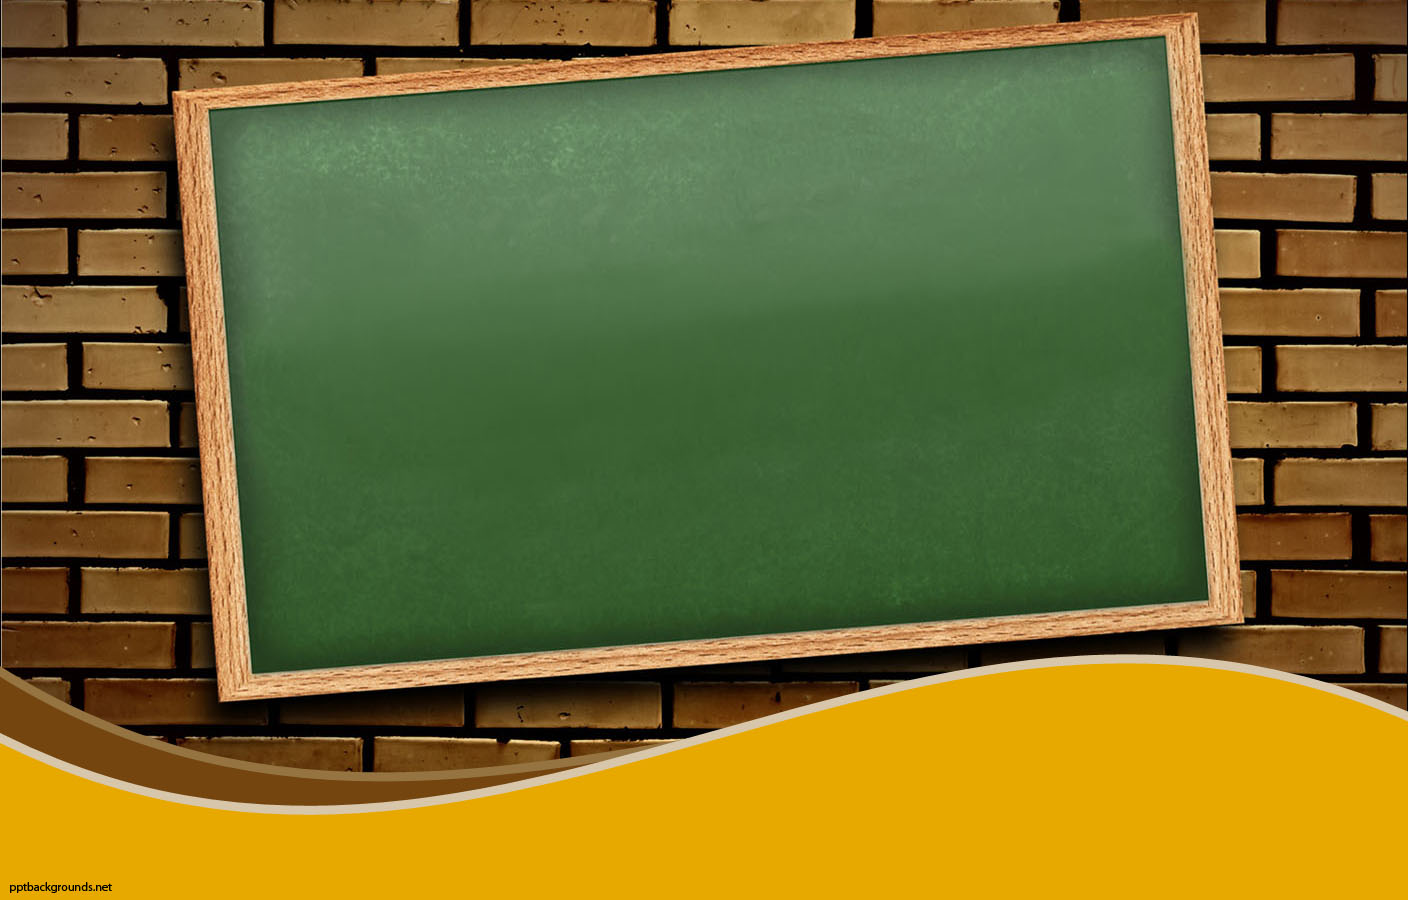 School Board Background For PowerPoint   Education PPT Templates 1408x900